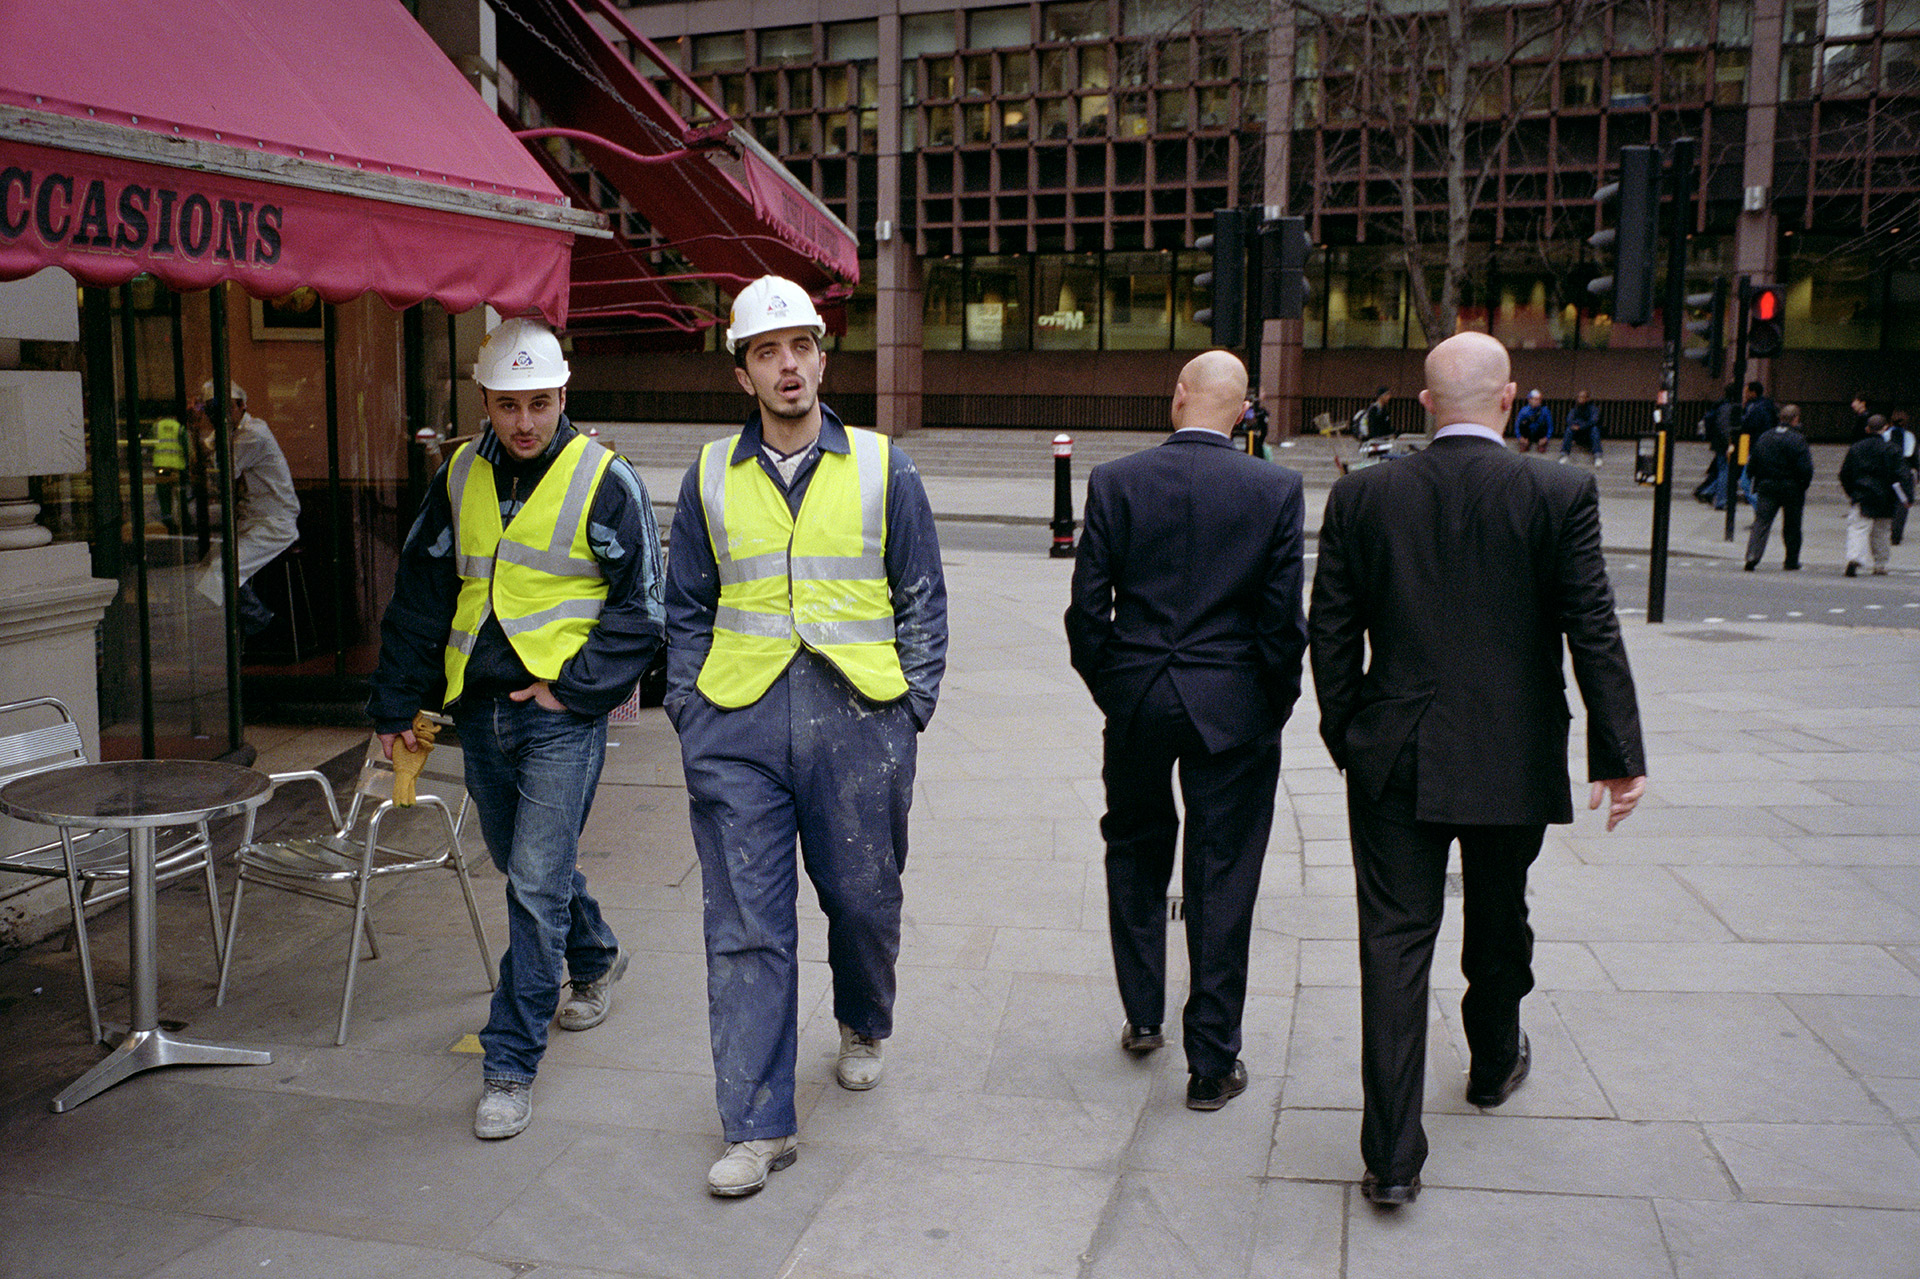 Candid Street Photography Scene with construction workers and men is suits | Liverpool Street, London.